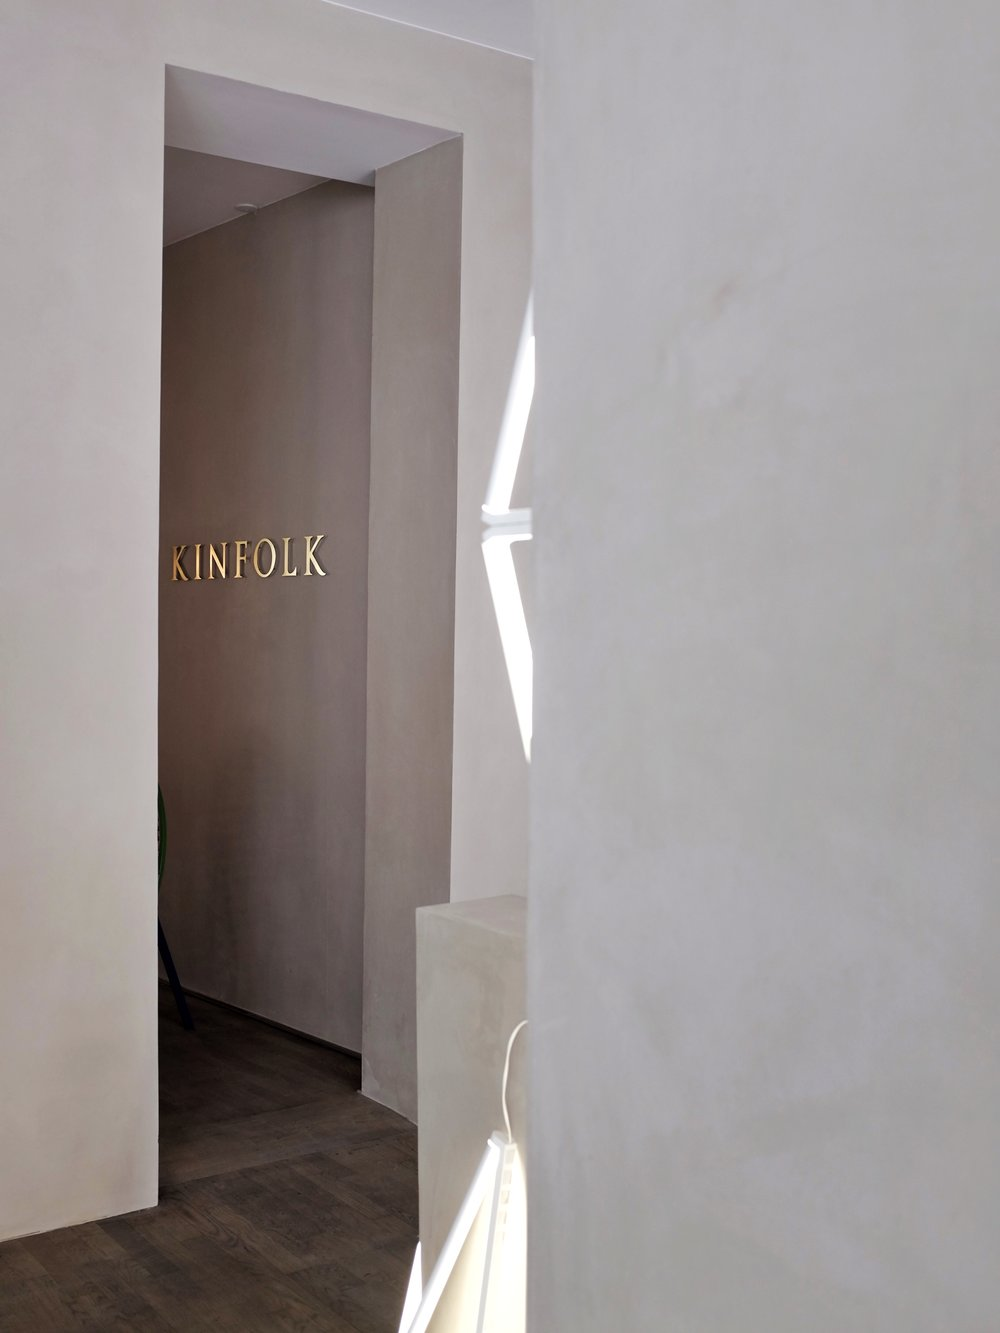 The city is home to the head offices of Kinfolk.